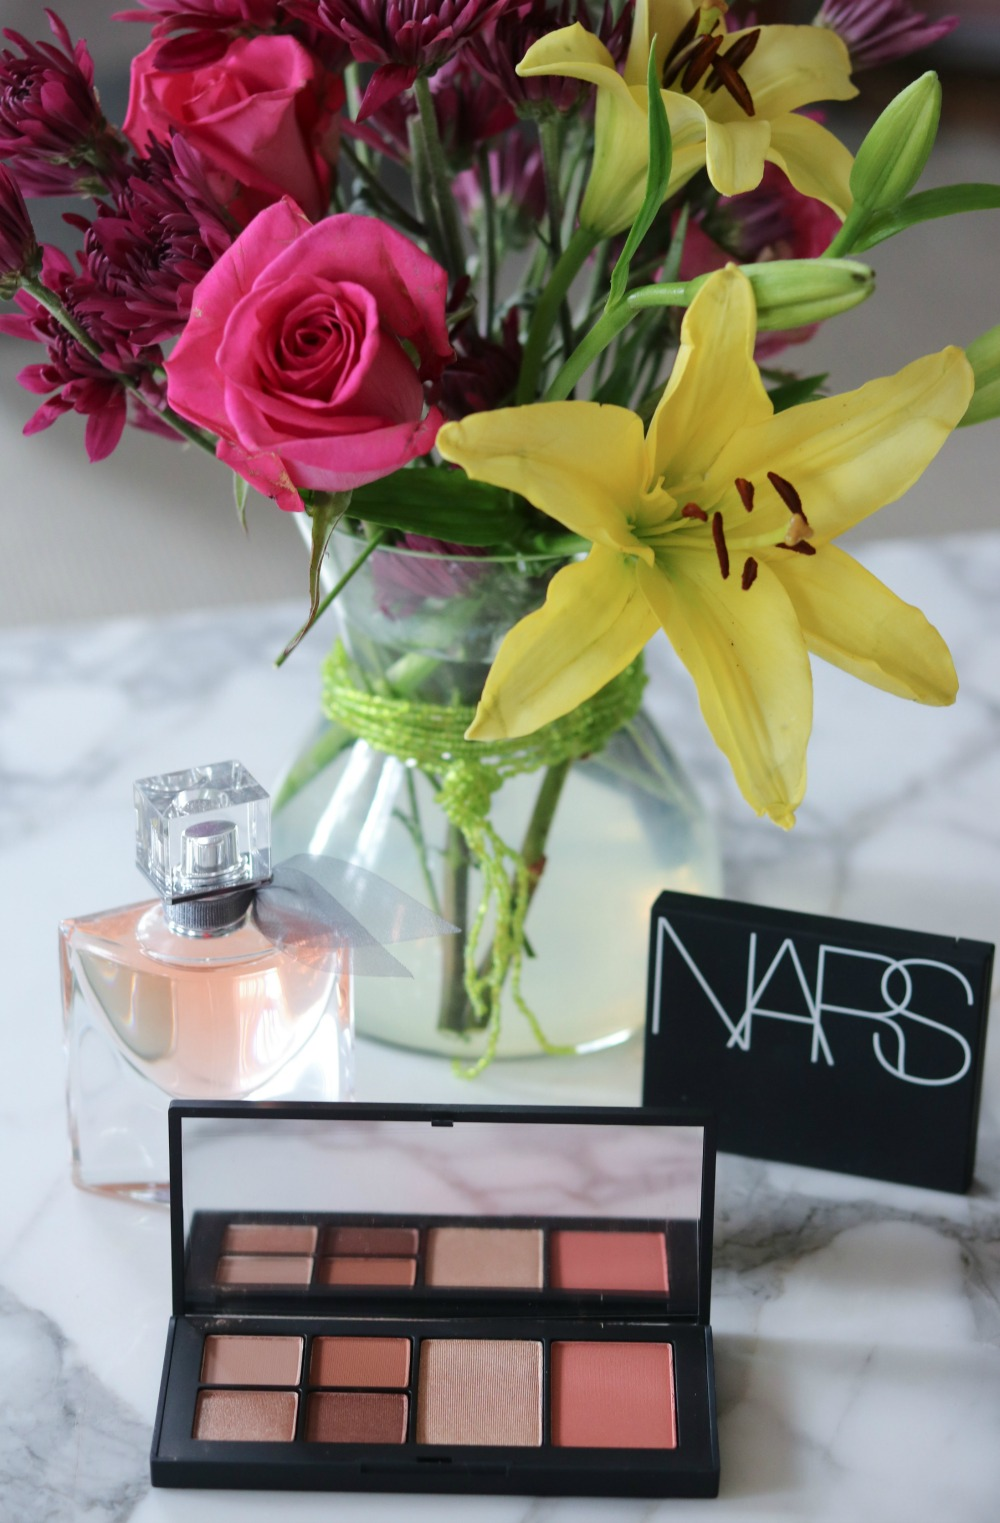 The Perfect Travel Makeup Palette From NARS